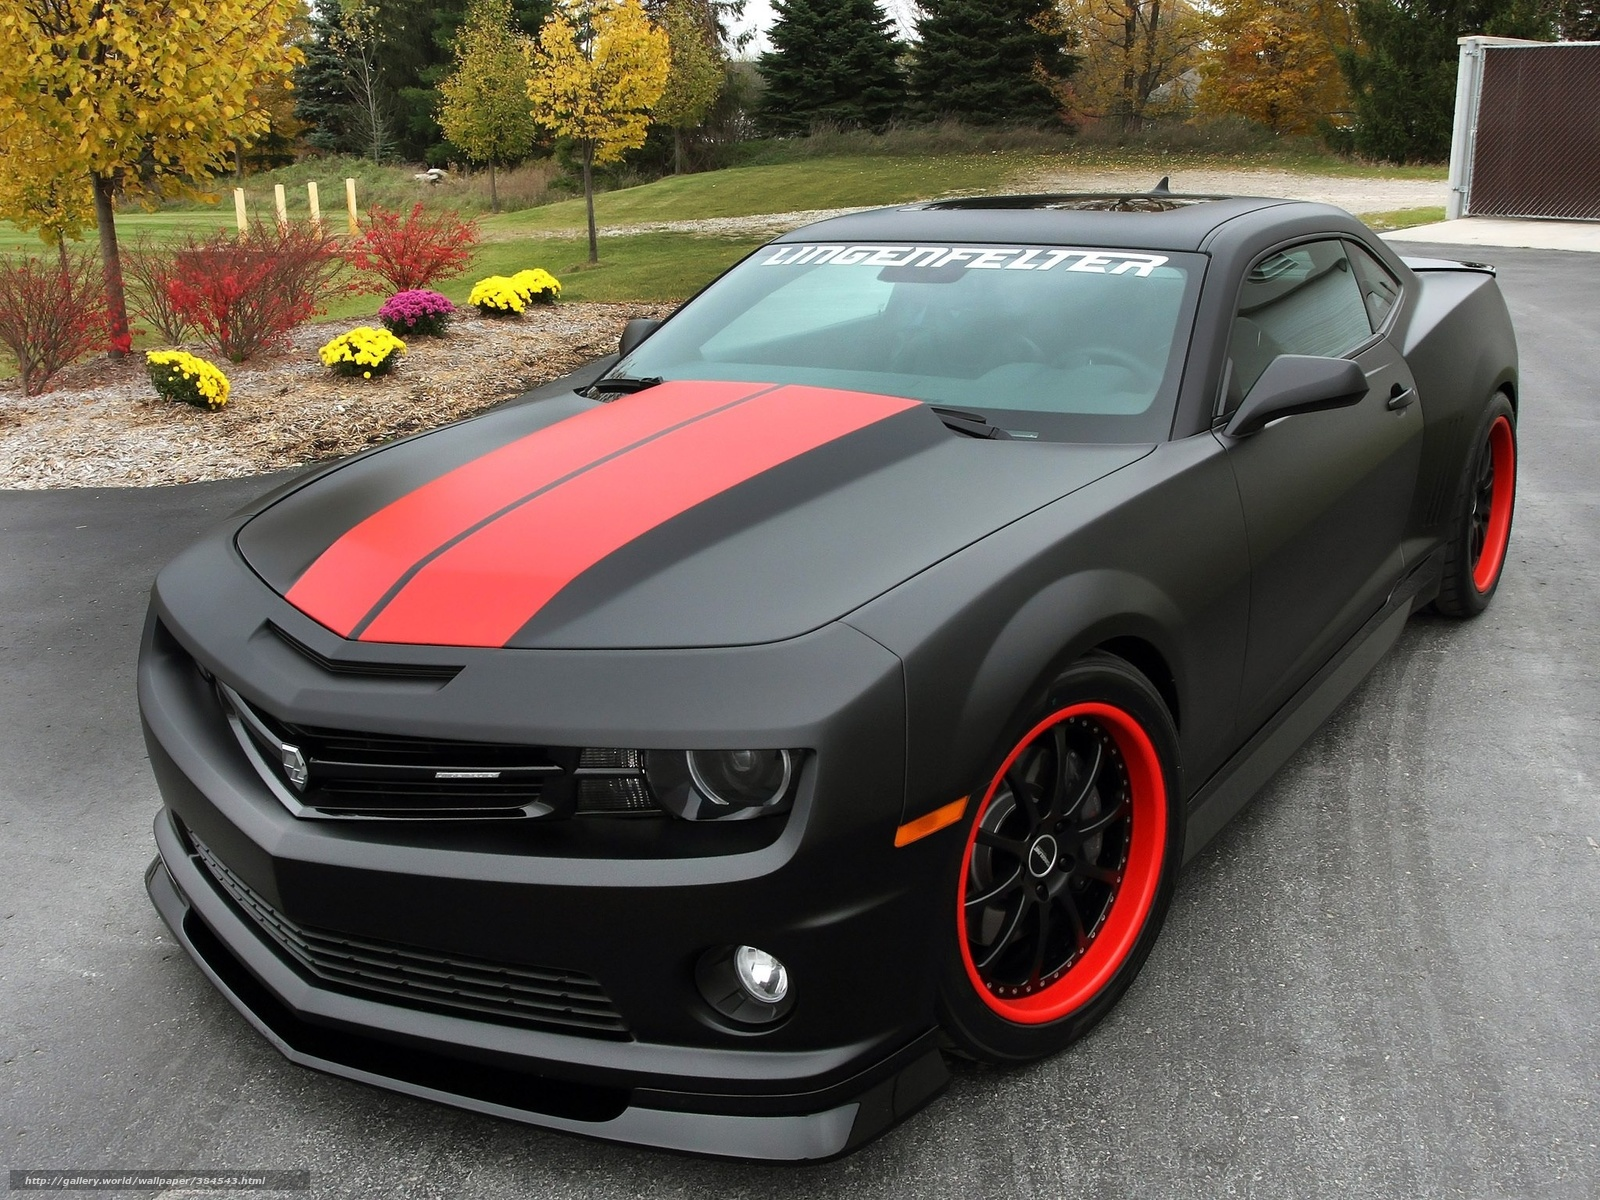 Chevrolet, camaro, black, cars, machinery, Car